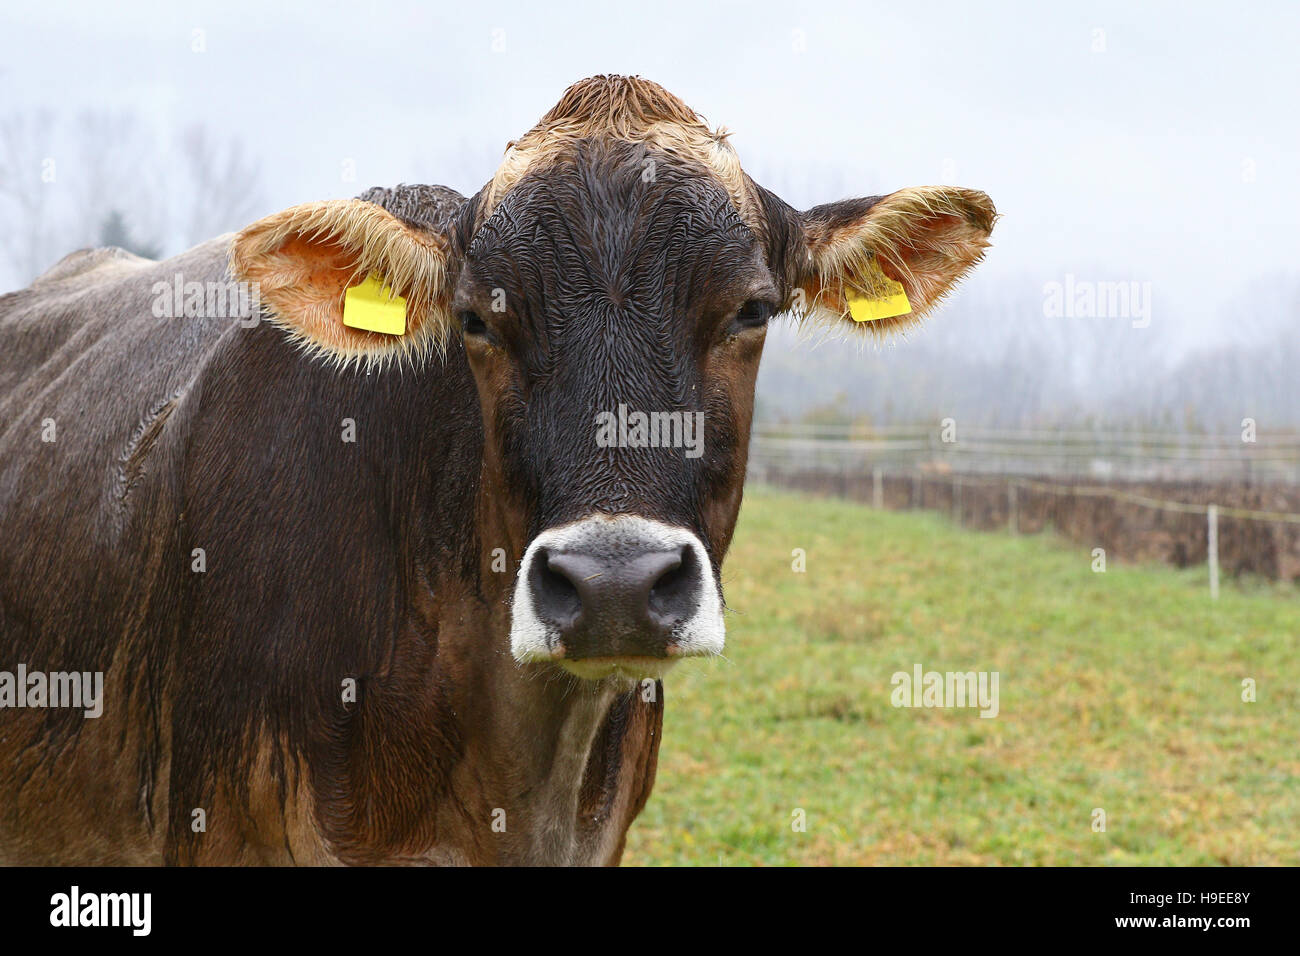 Wet brown cow in green field on a rainy day - Stock Image